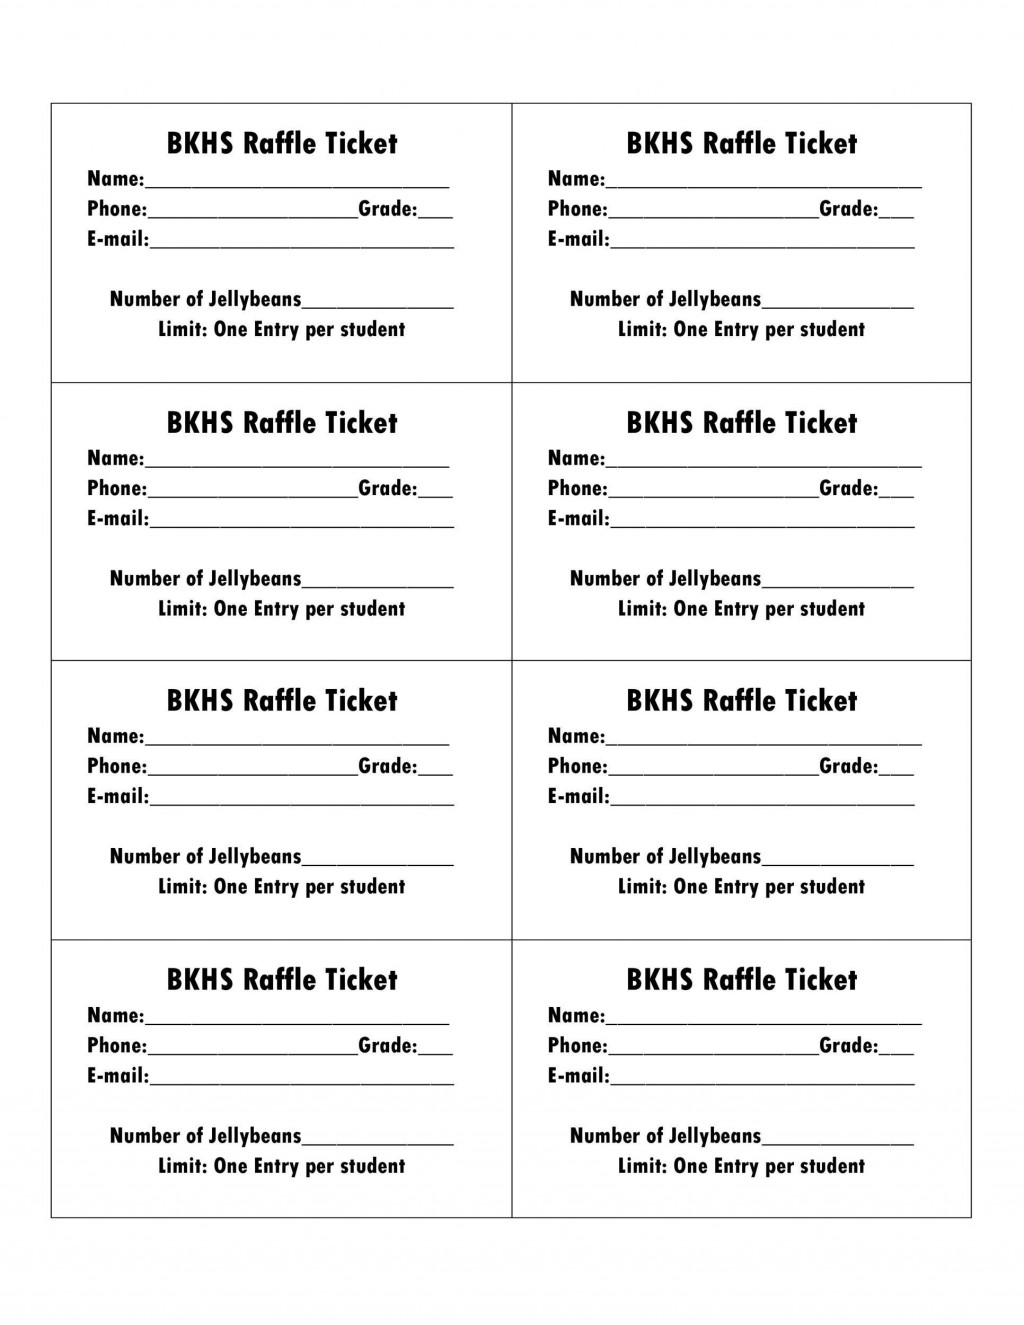 001 Magnificent Raffle Ticket Template Word Photo  8 Per Page FormatLarge